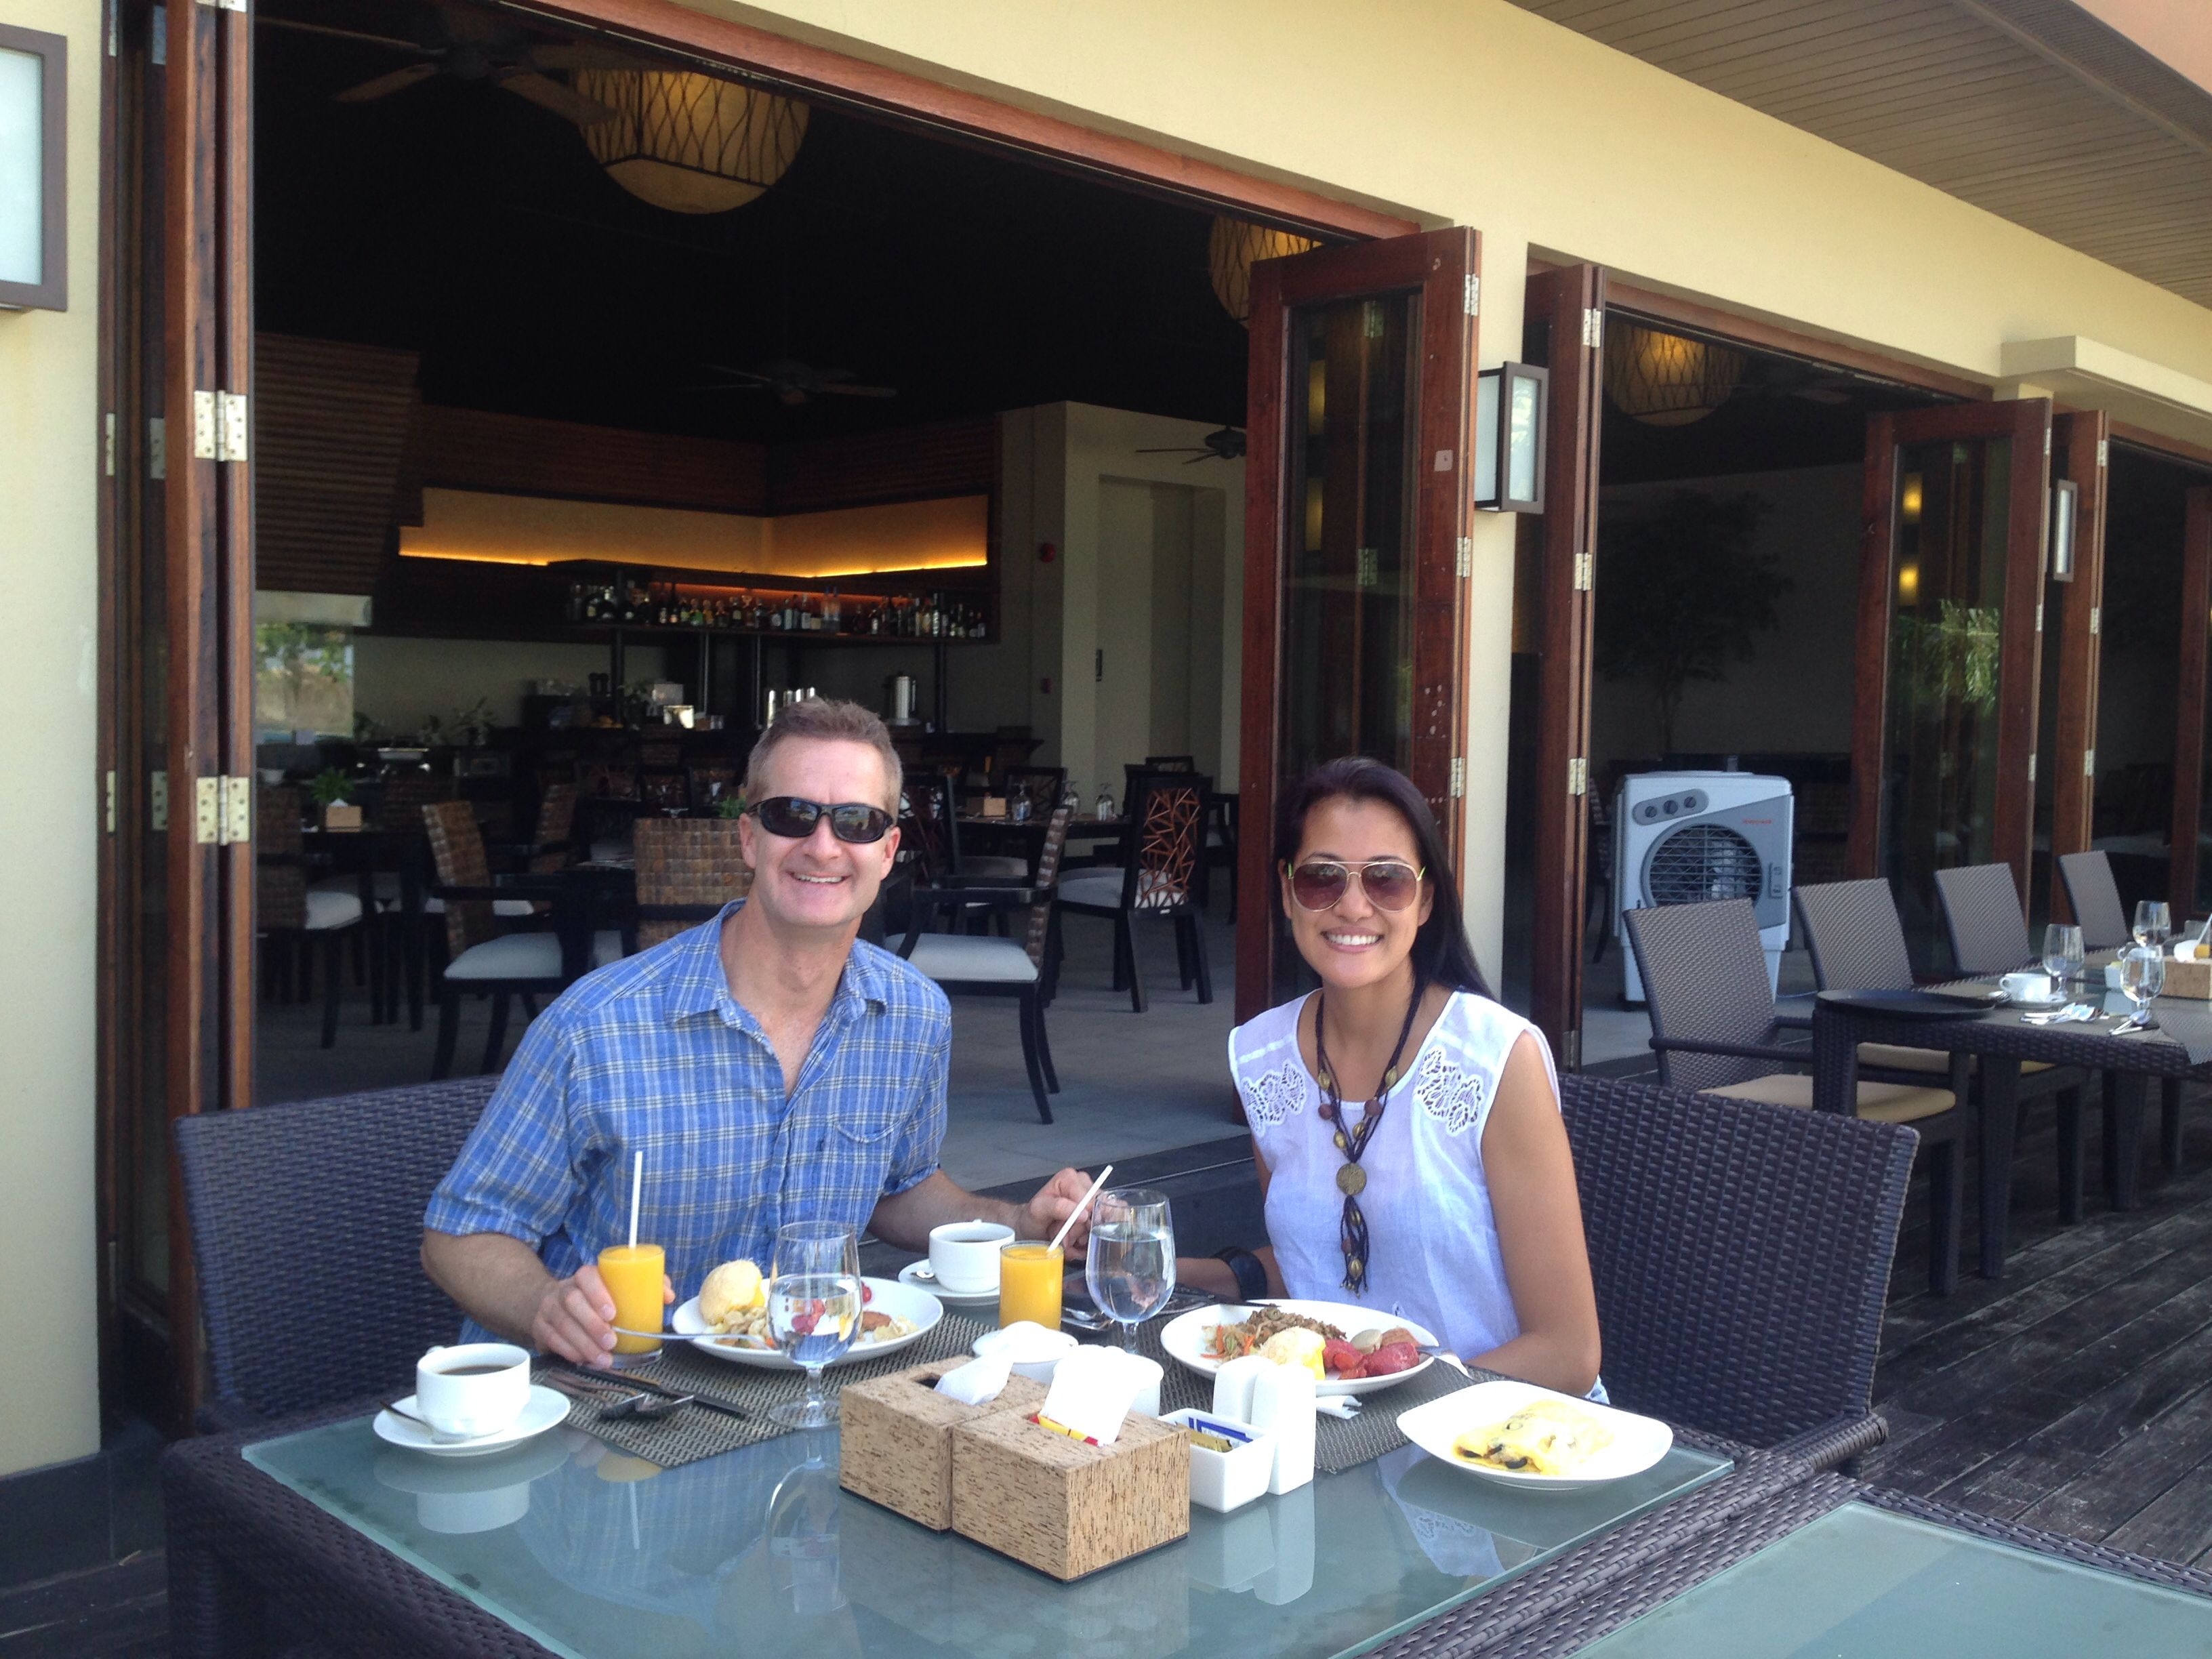 Breakfast at Sulu Restaurant. Unlimited Mango shakes (unless they run out of fresh mangoes). Yum!